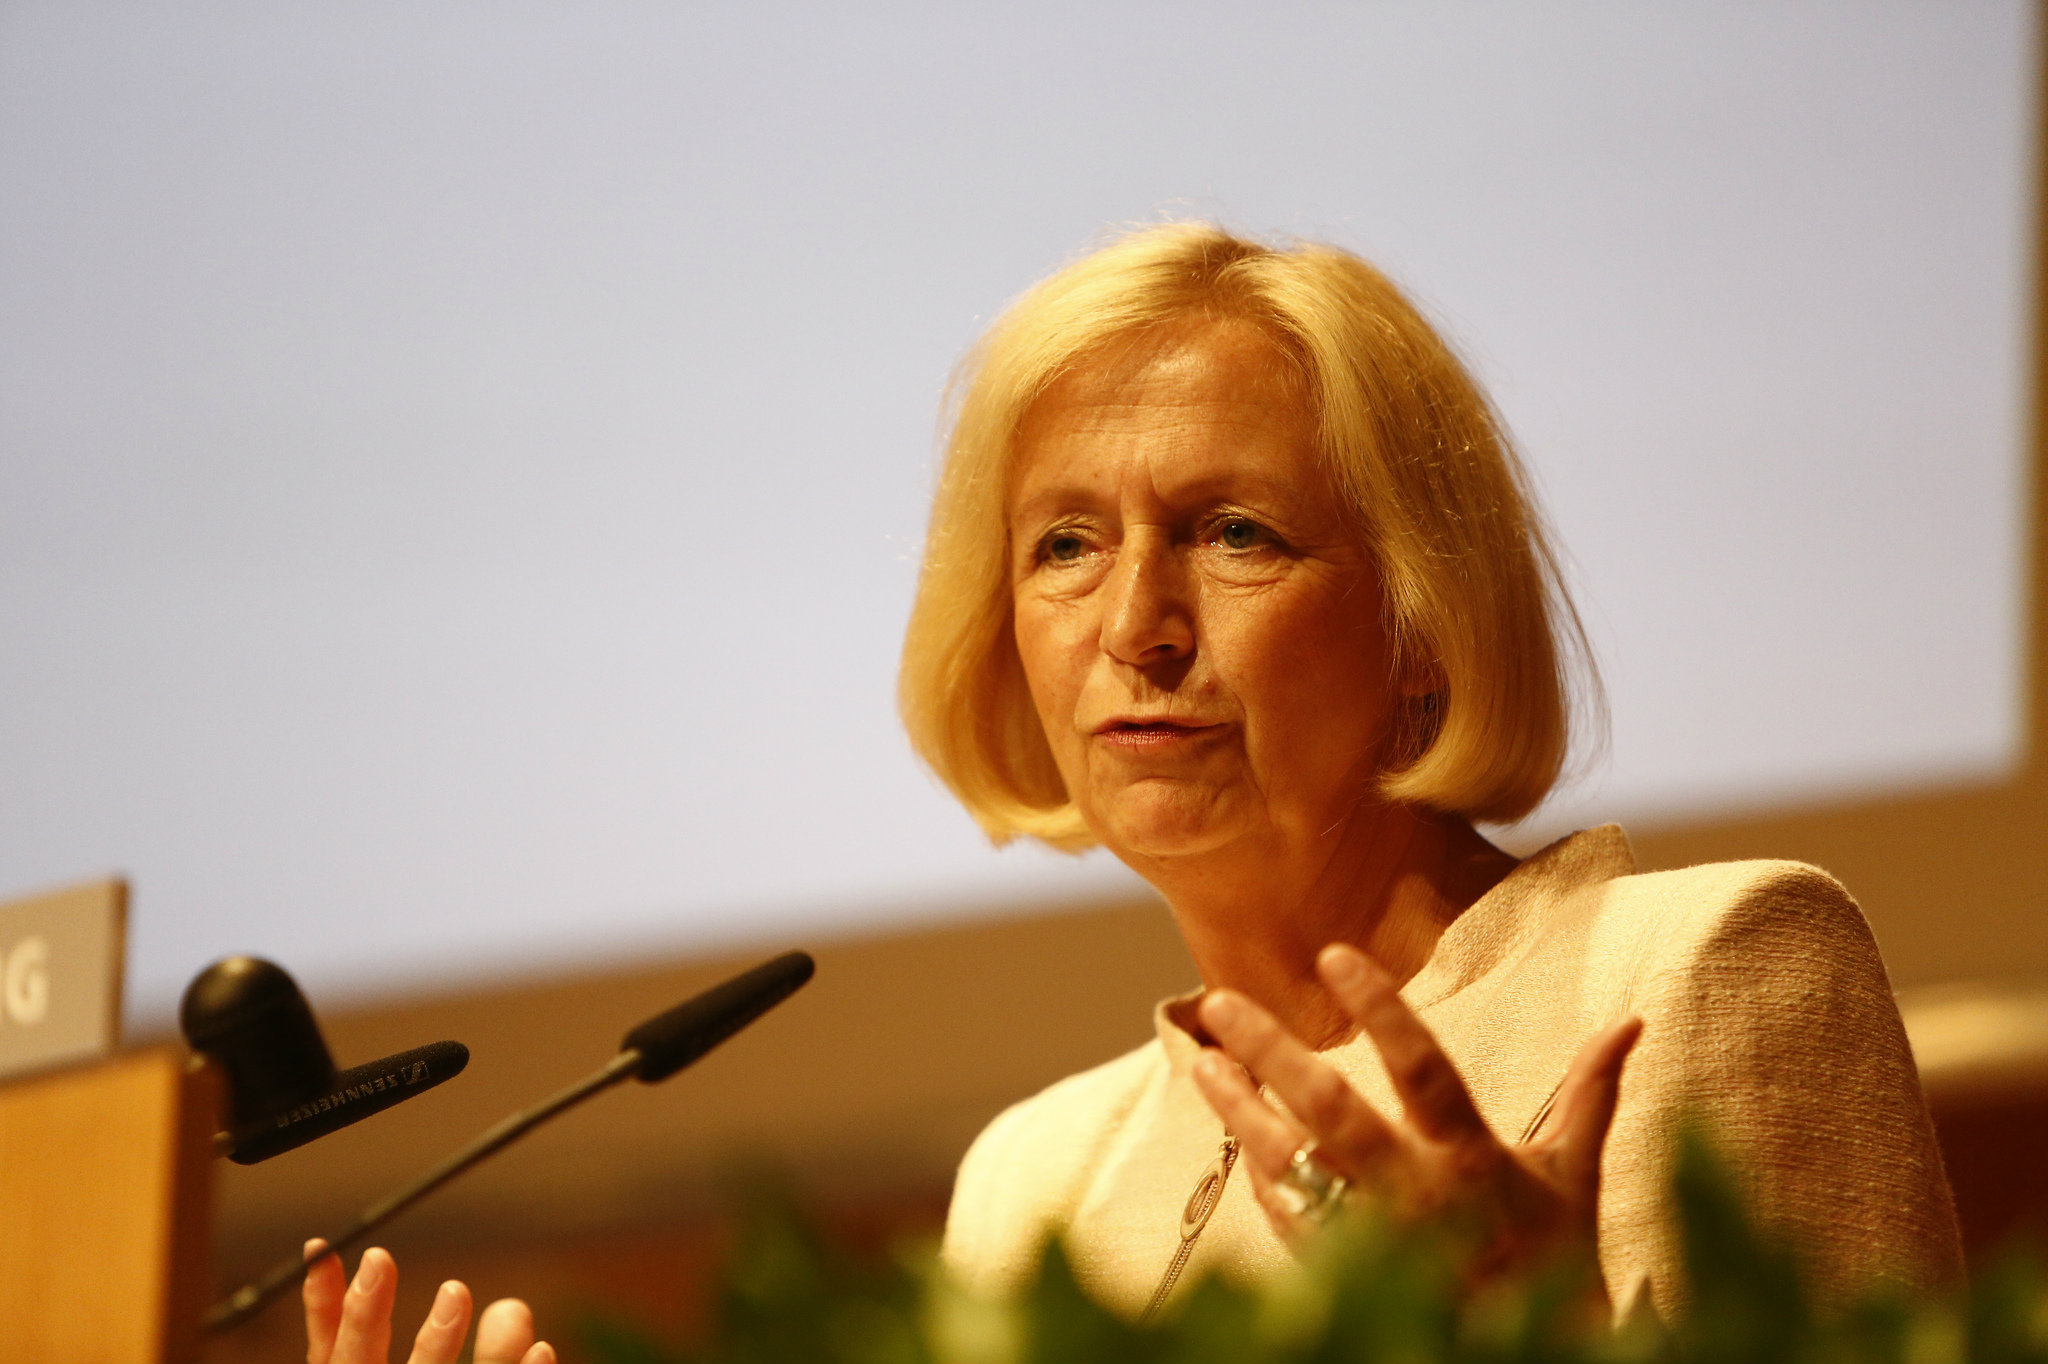 German Minister of Research and Education Johanna Wanka hopes that more integration between the research and economic sectors will boost growth and create added benefit in the workplace. Leipzig, 2013 [WorldSkills/Flickr]